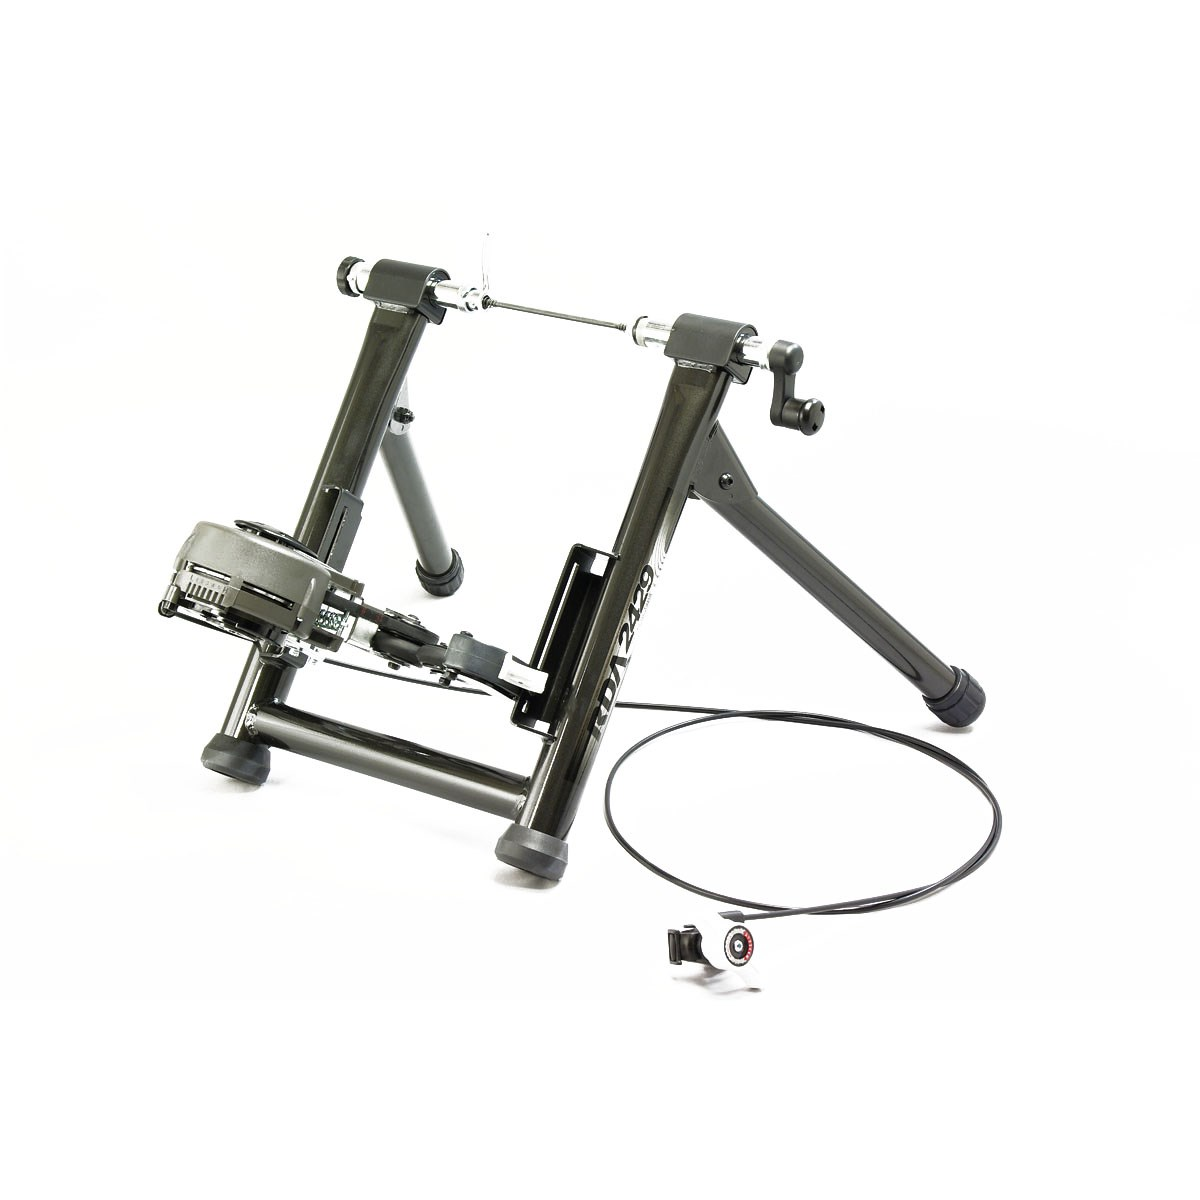 Minoura RDA 2429 Rim Drive Trainer: Compatible with Knobbly MTB Tyres